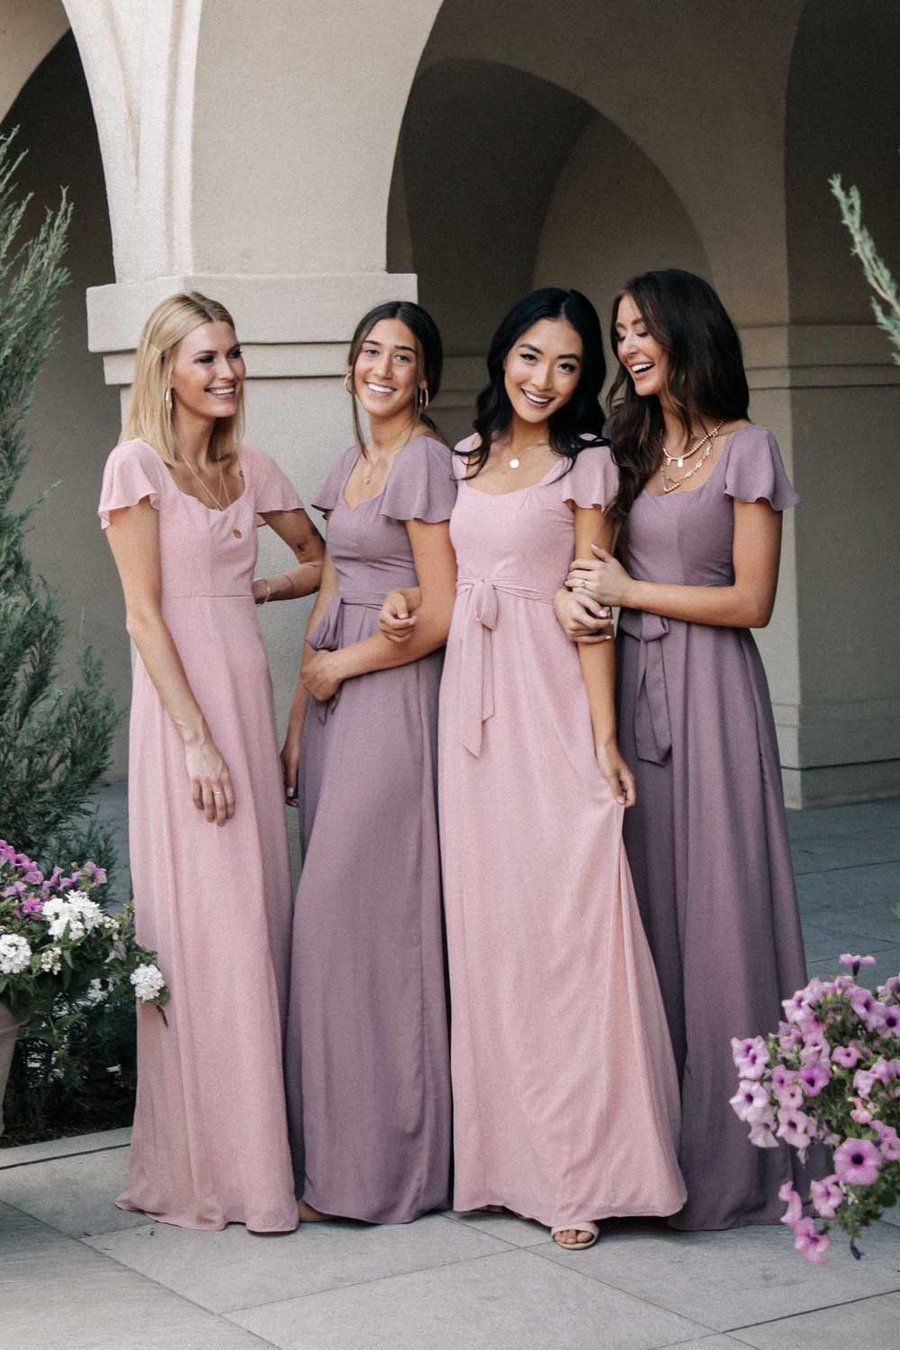 Florence Sweetheart Maxi Dress In Mauve In 2021 Lilac Bridesmaid Dresses Modest Bridesmaid Dresses Mauve Bridesmaid Dress [ 1350 x 900 Pixel ]